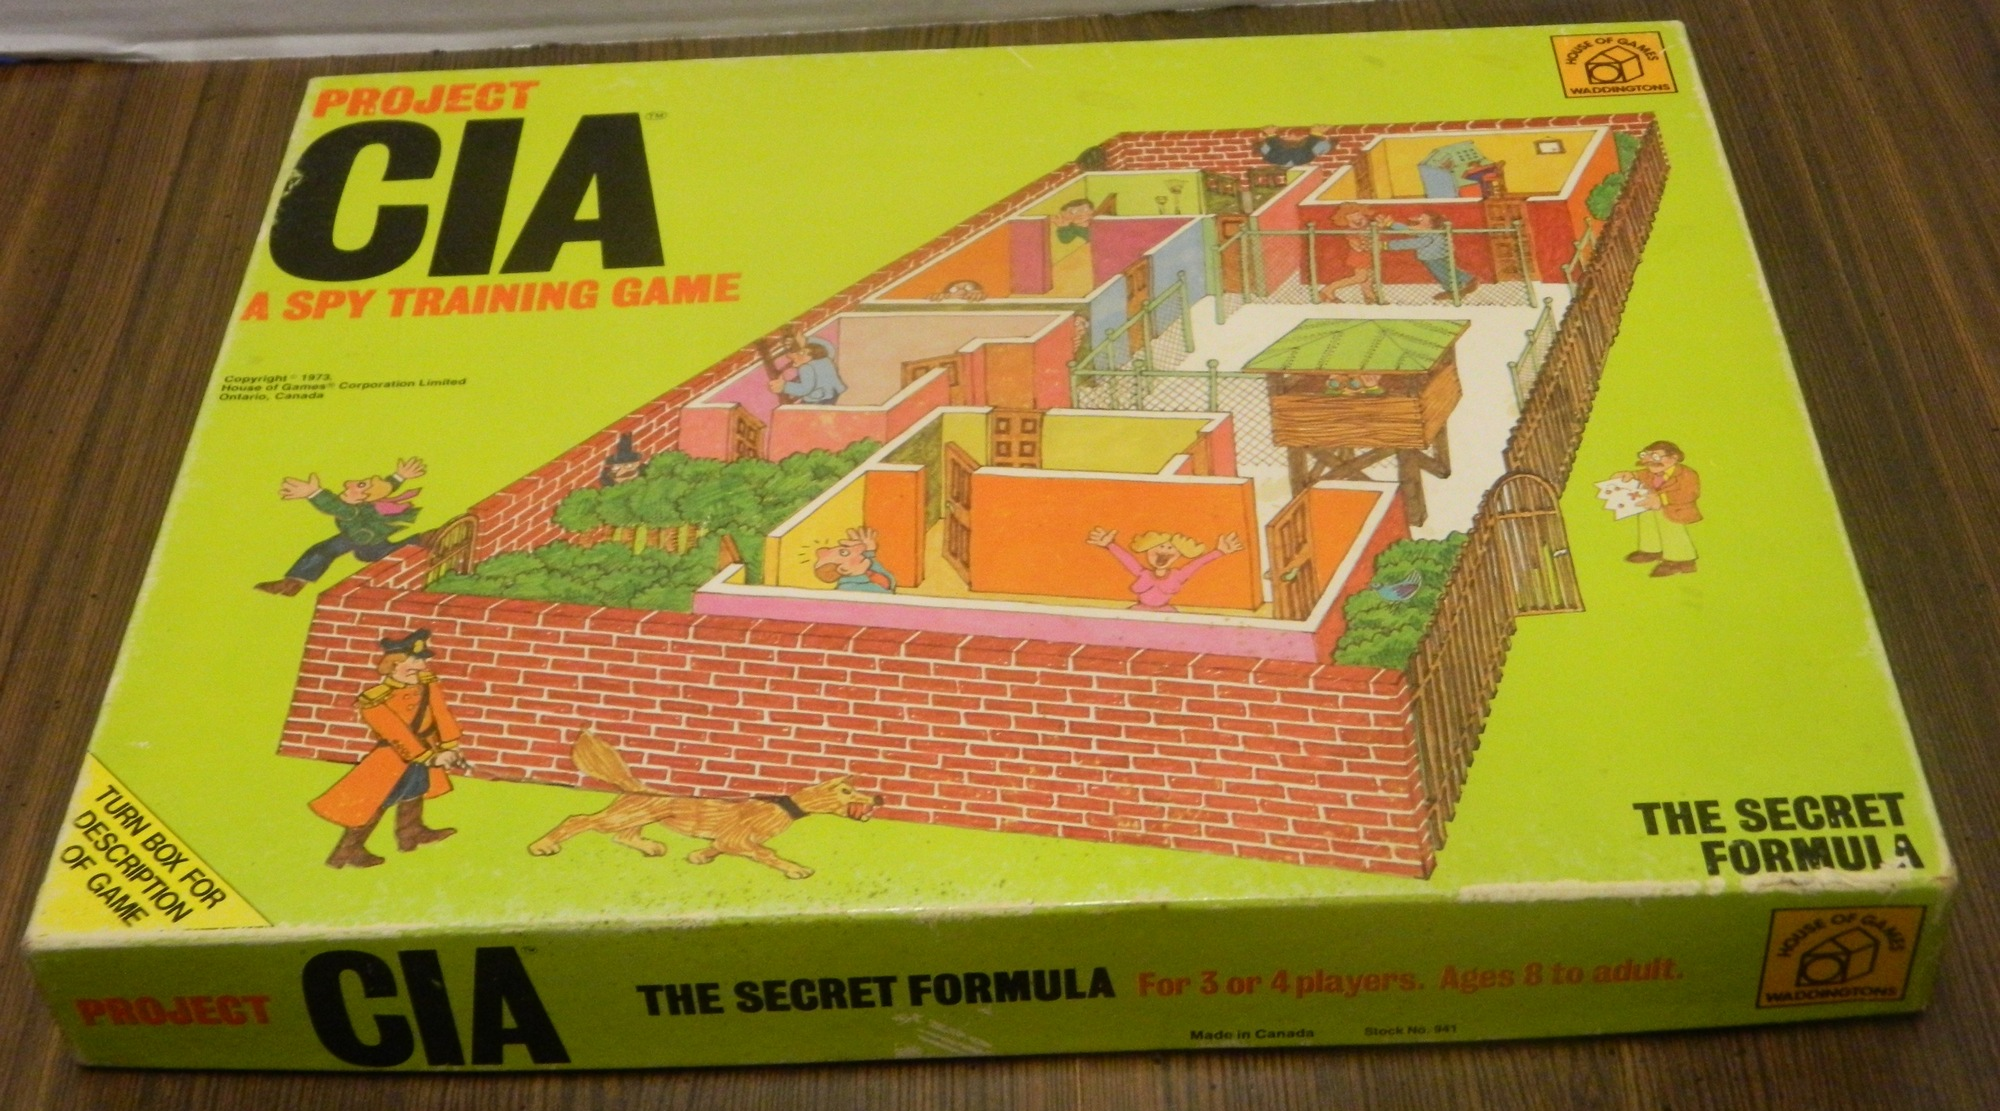 Project CIA Box